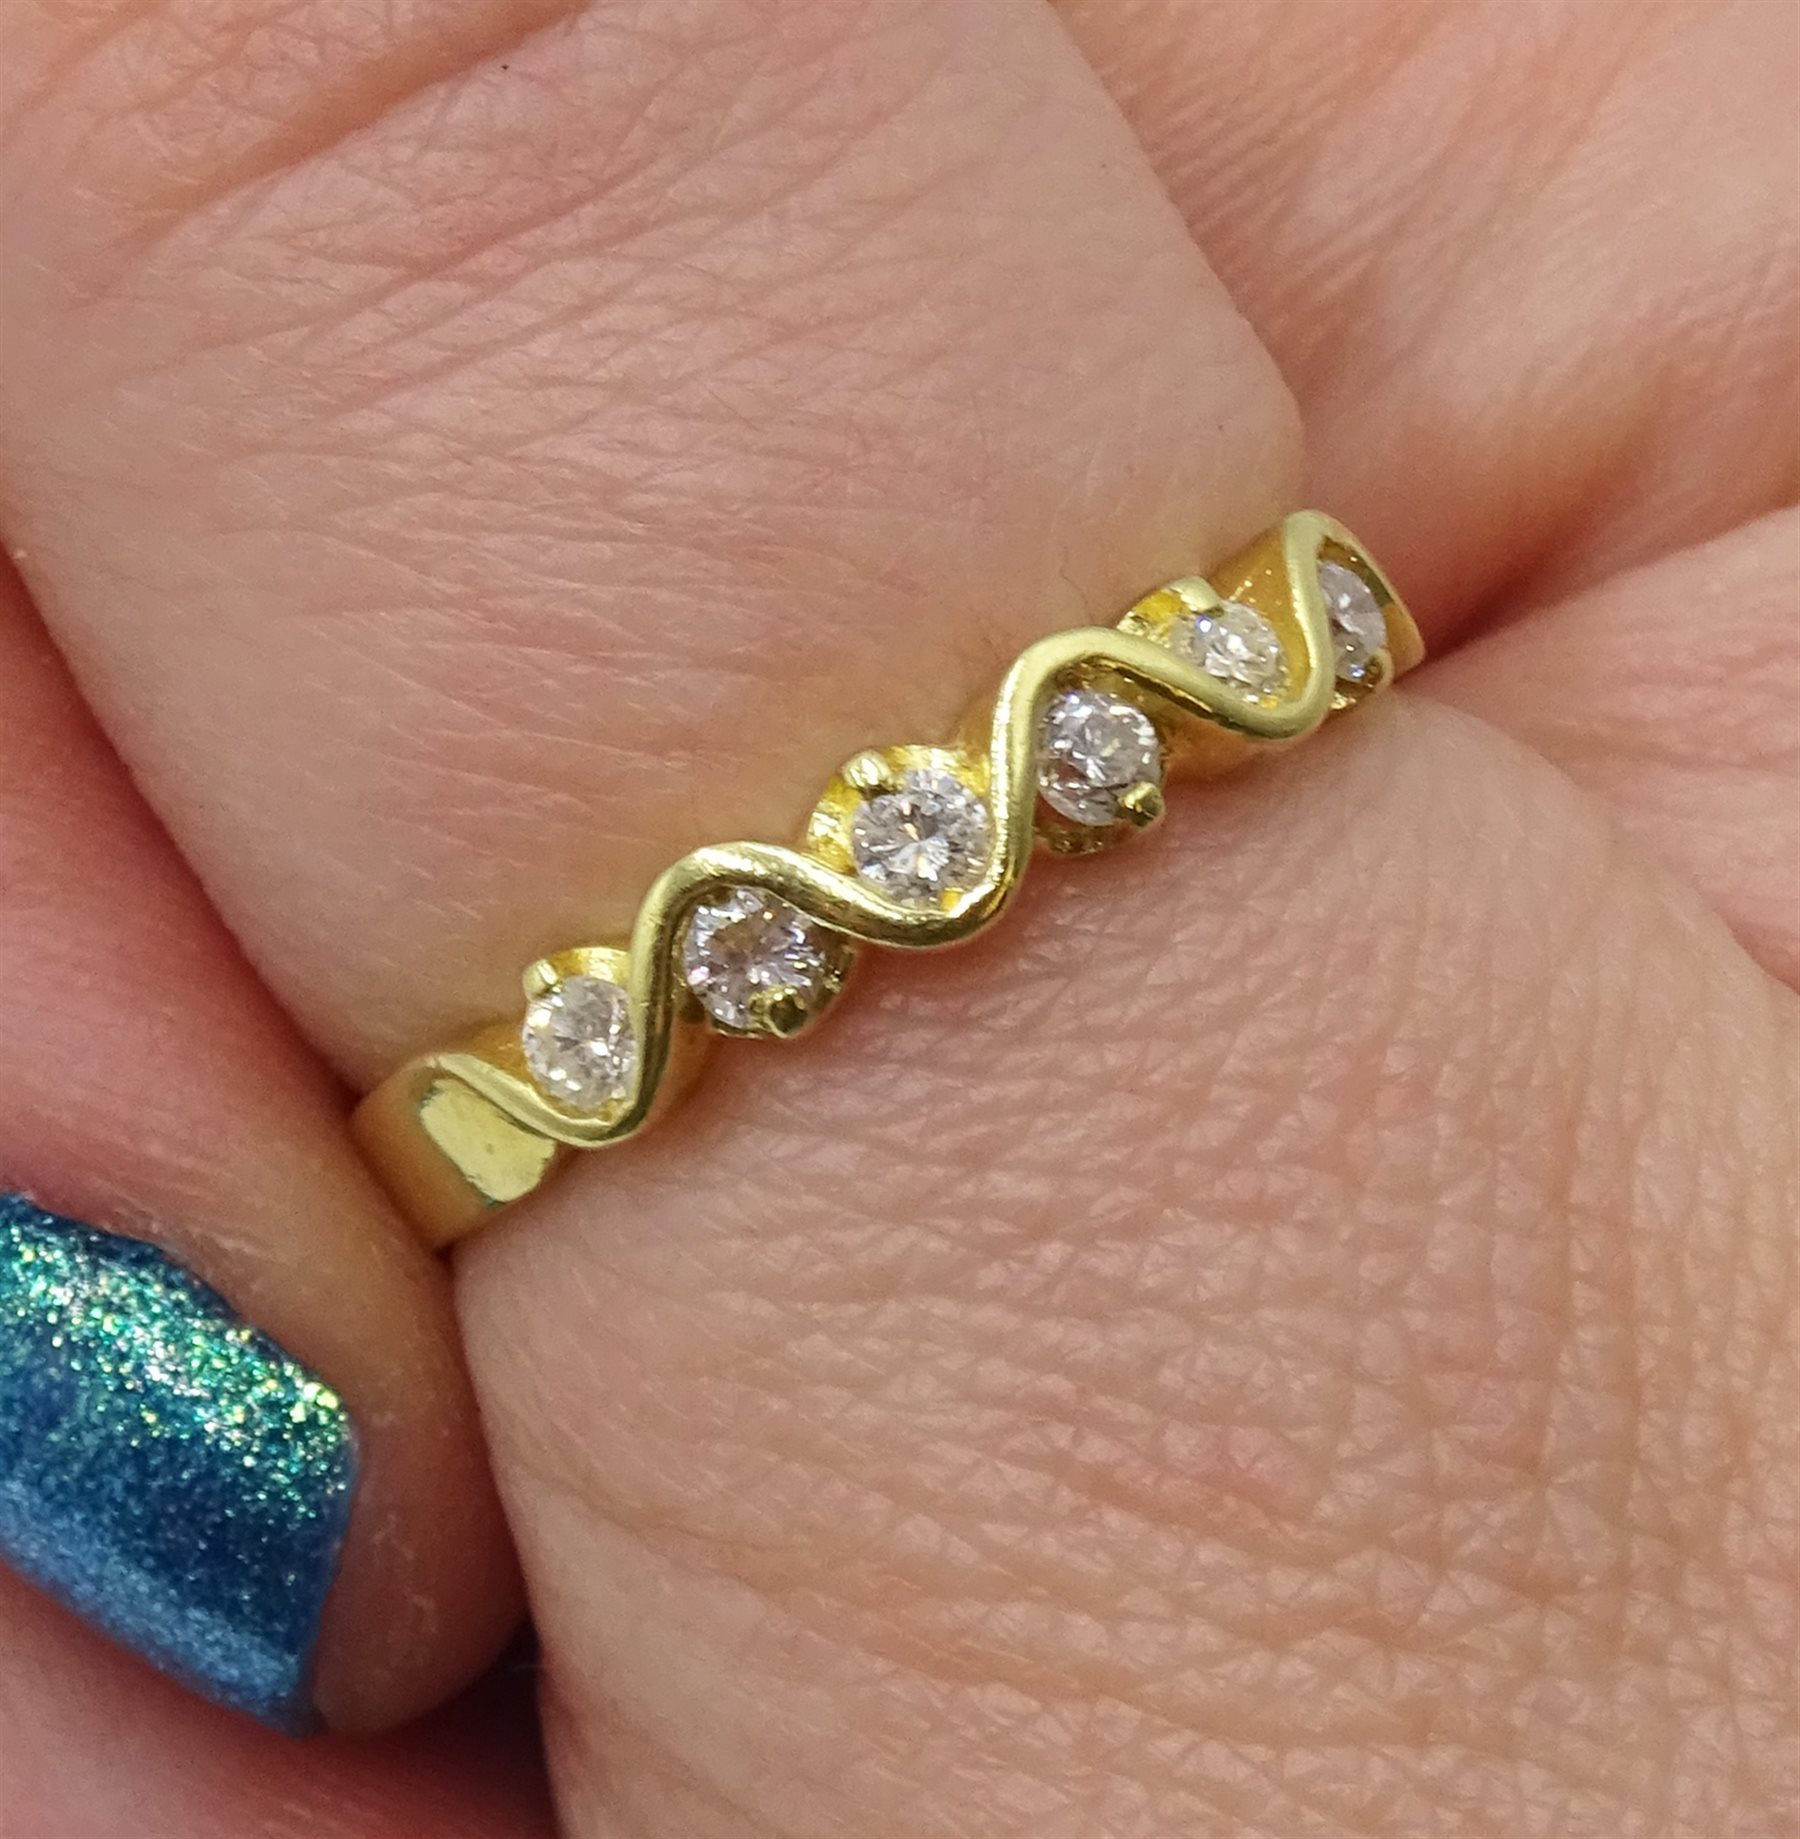 18ct gold seven stone diamond, weave design ring, London import marks 1994, total diamond weight 0.2 - Image 2 of 4